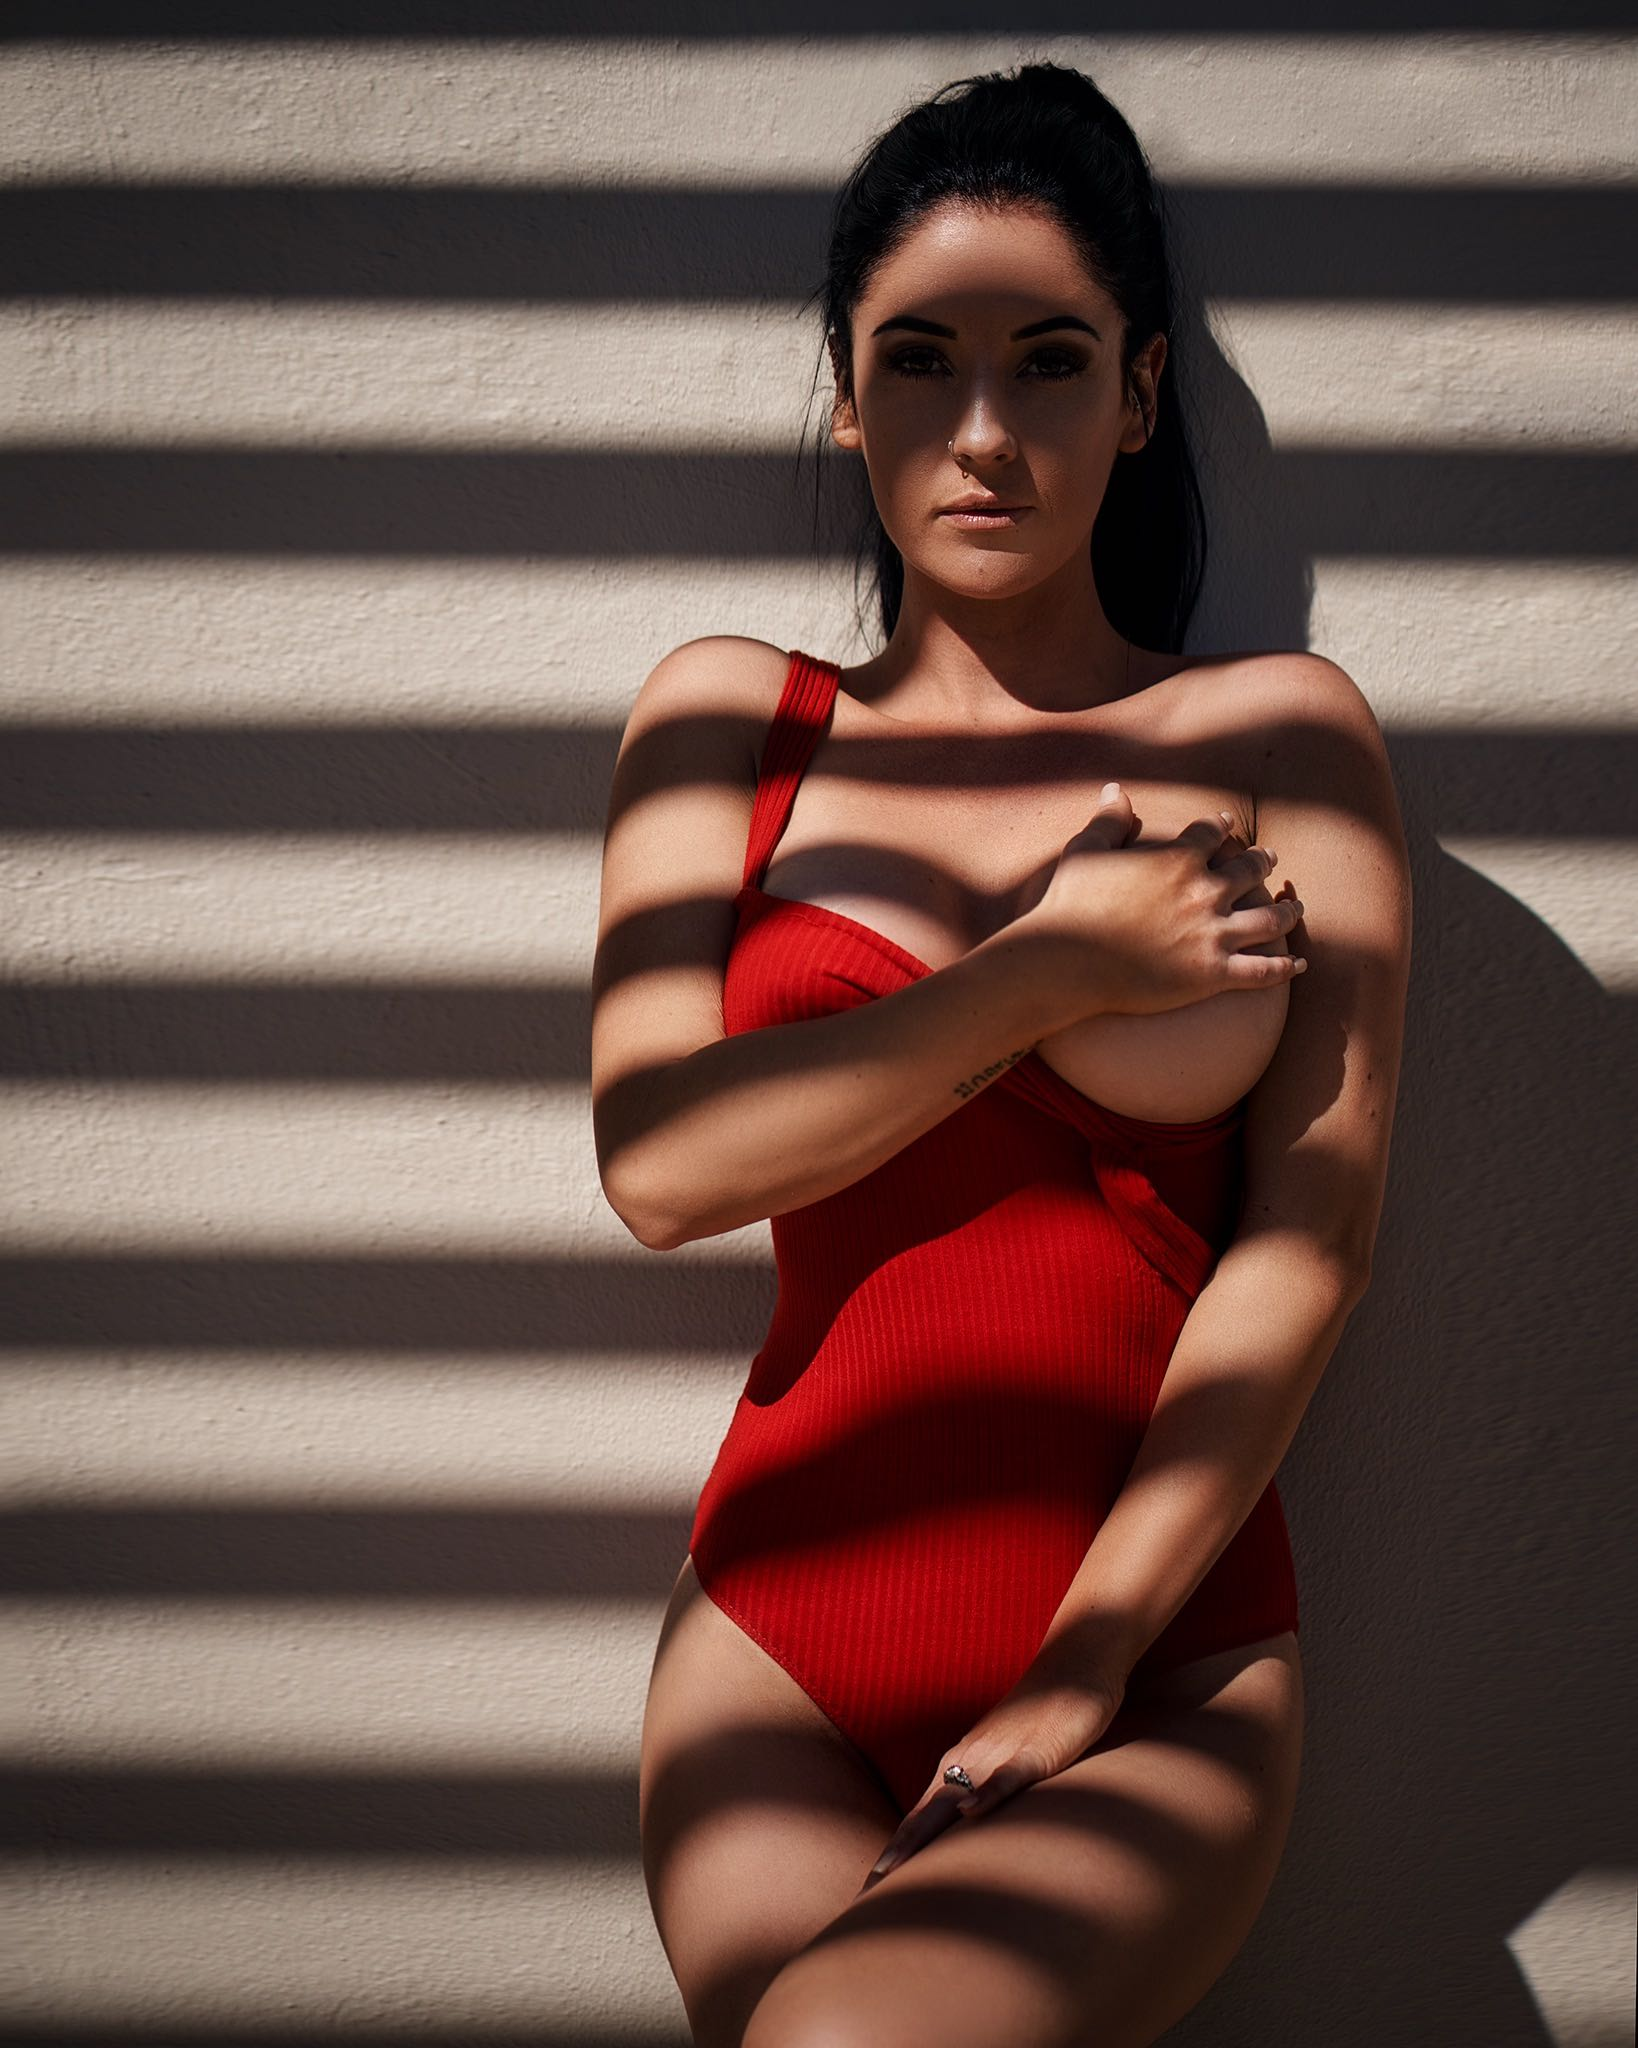 Swimsuit model, Christelle du Plessis features as this week's LW Babe